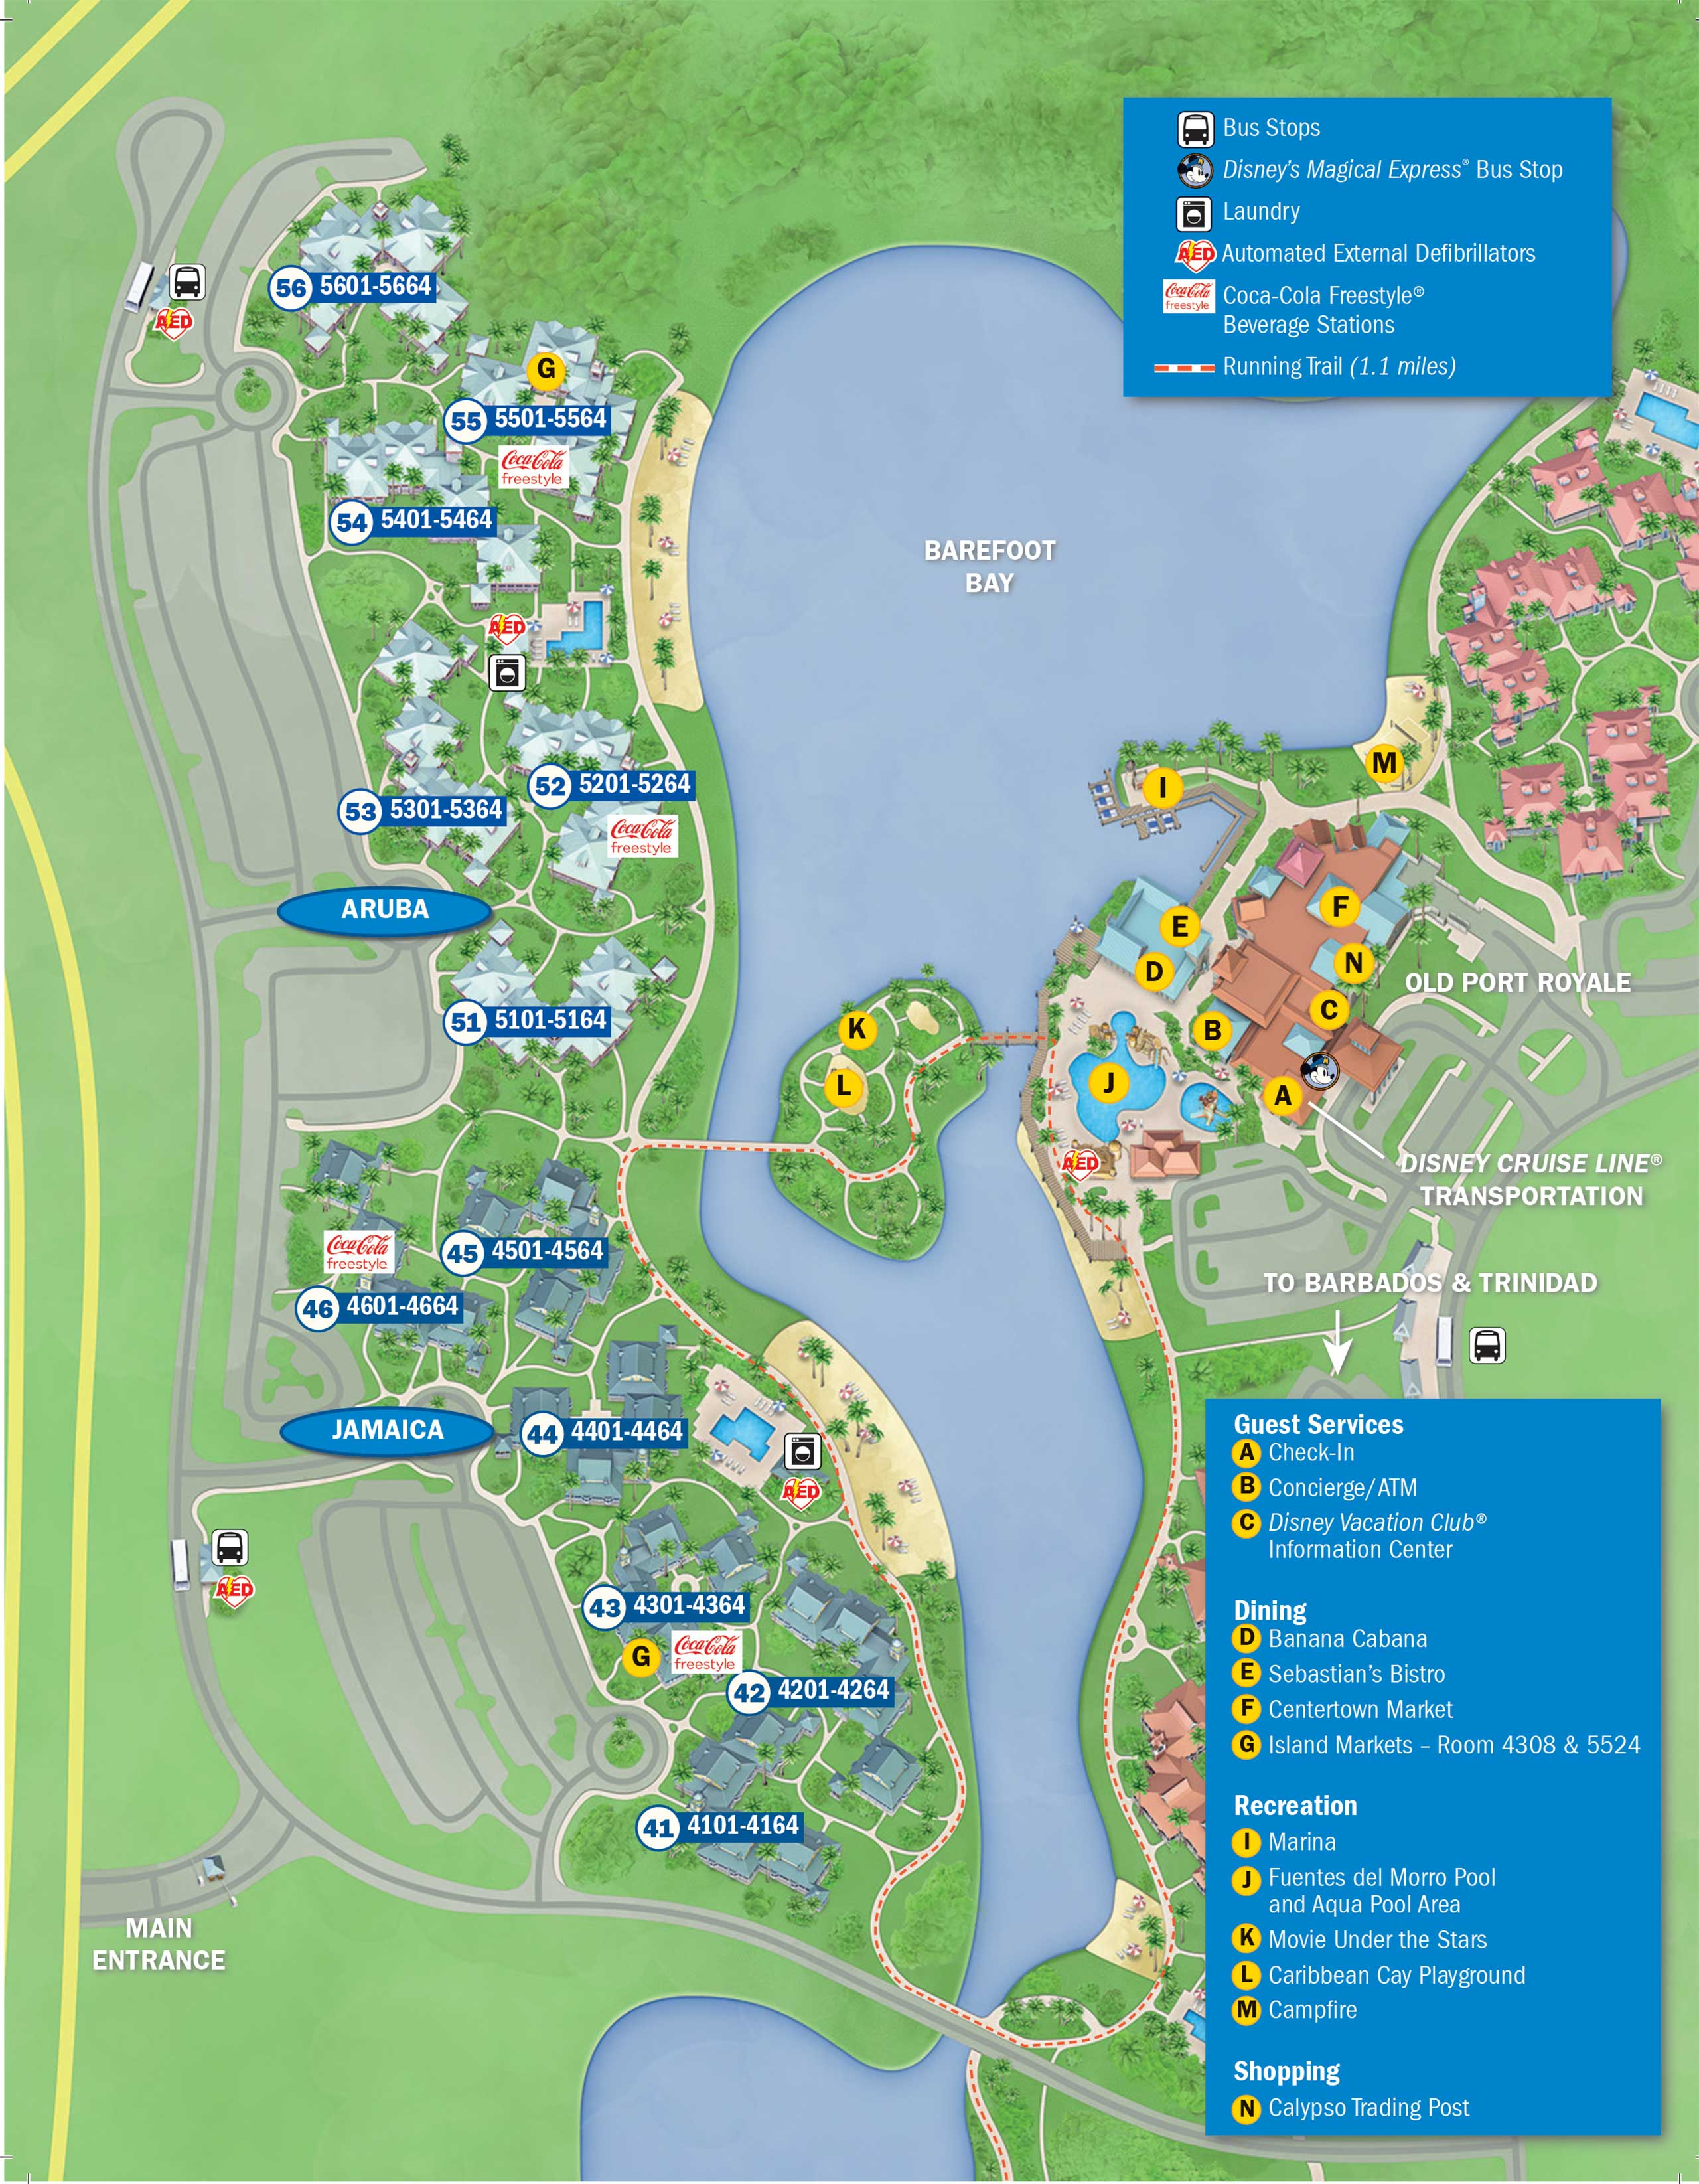 Updated Disney's Caribbean Beach Resort map - back